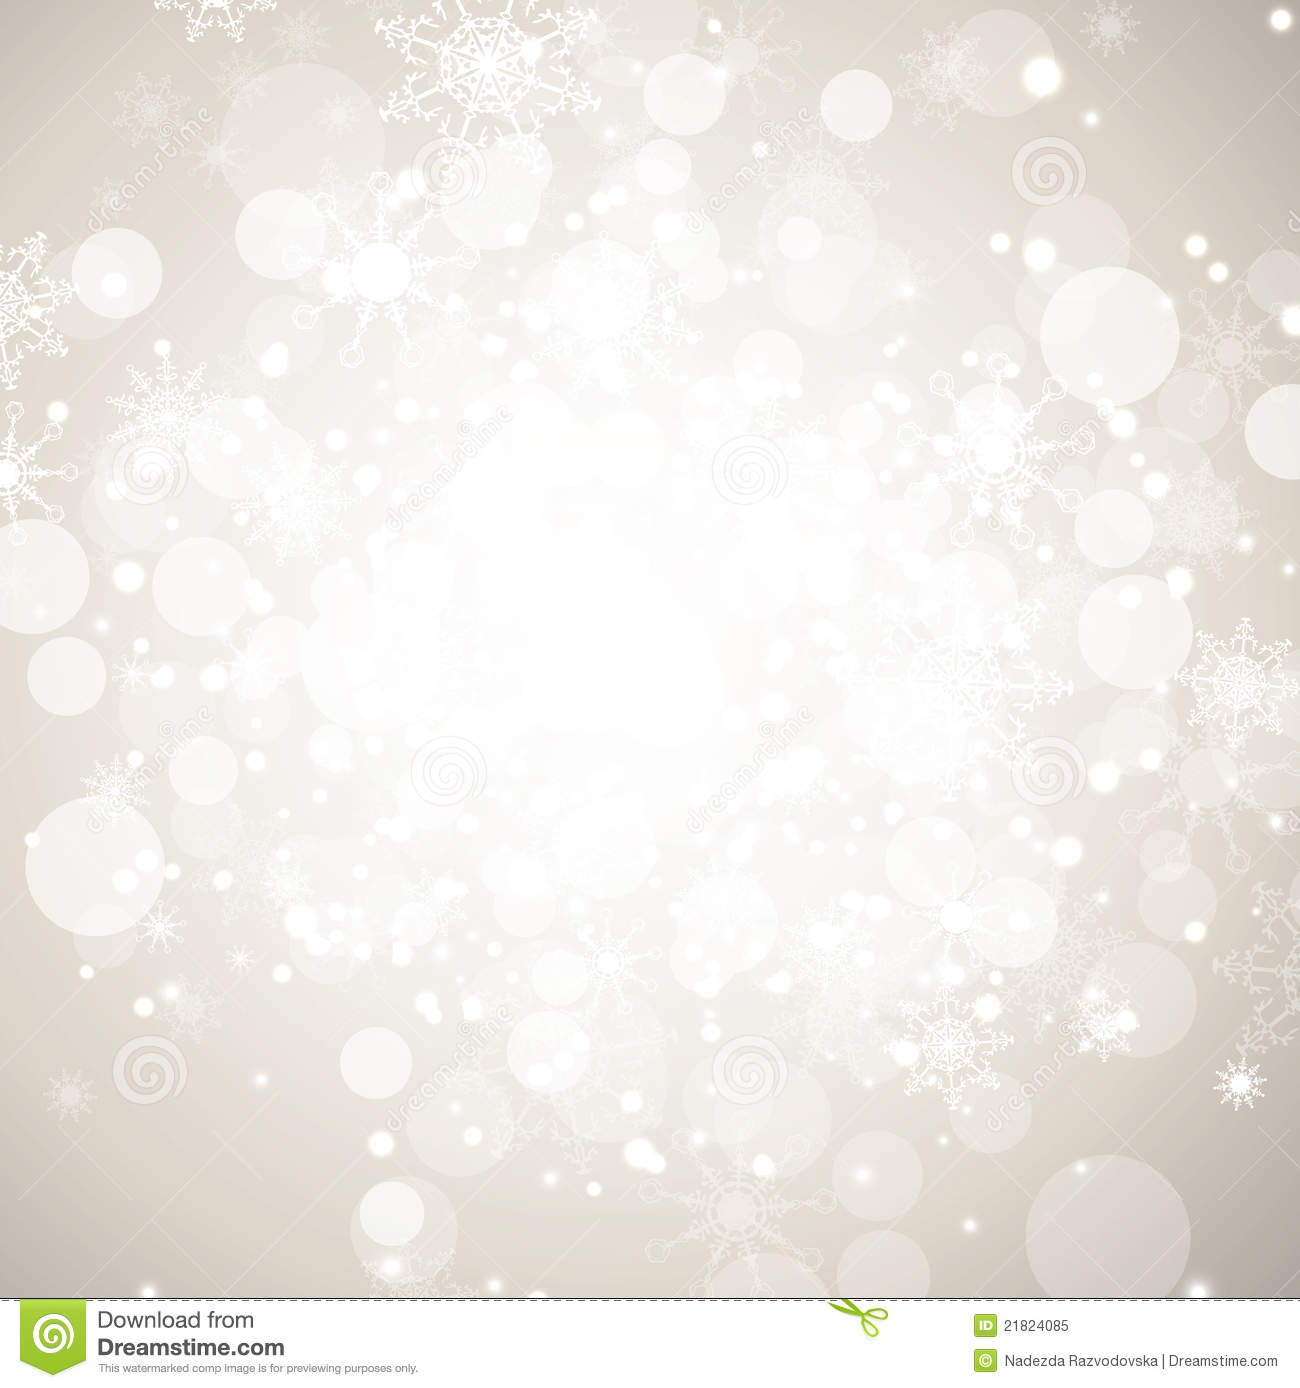 Falling Snow Wallpaper Download Winter Holiday Abstract Background Stock Vector